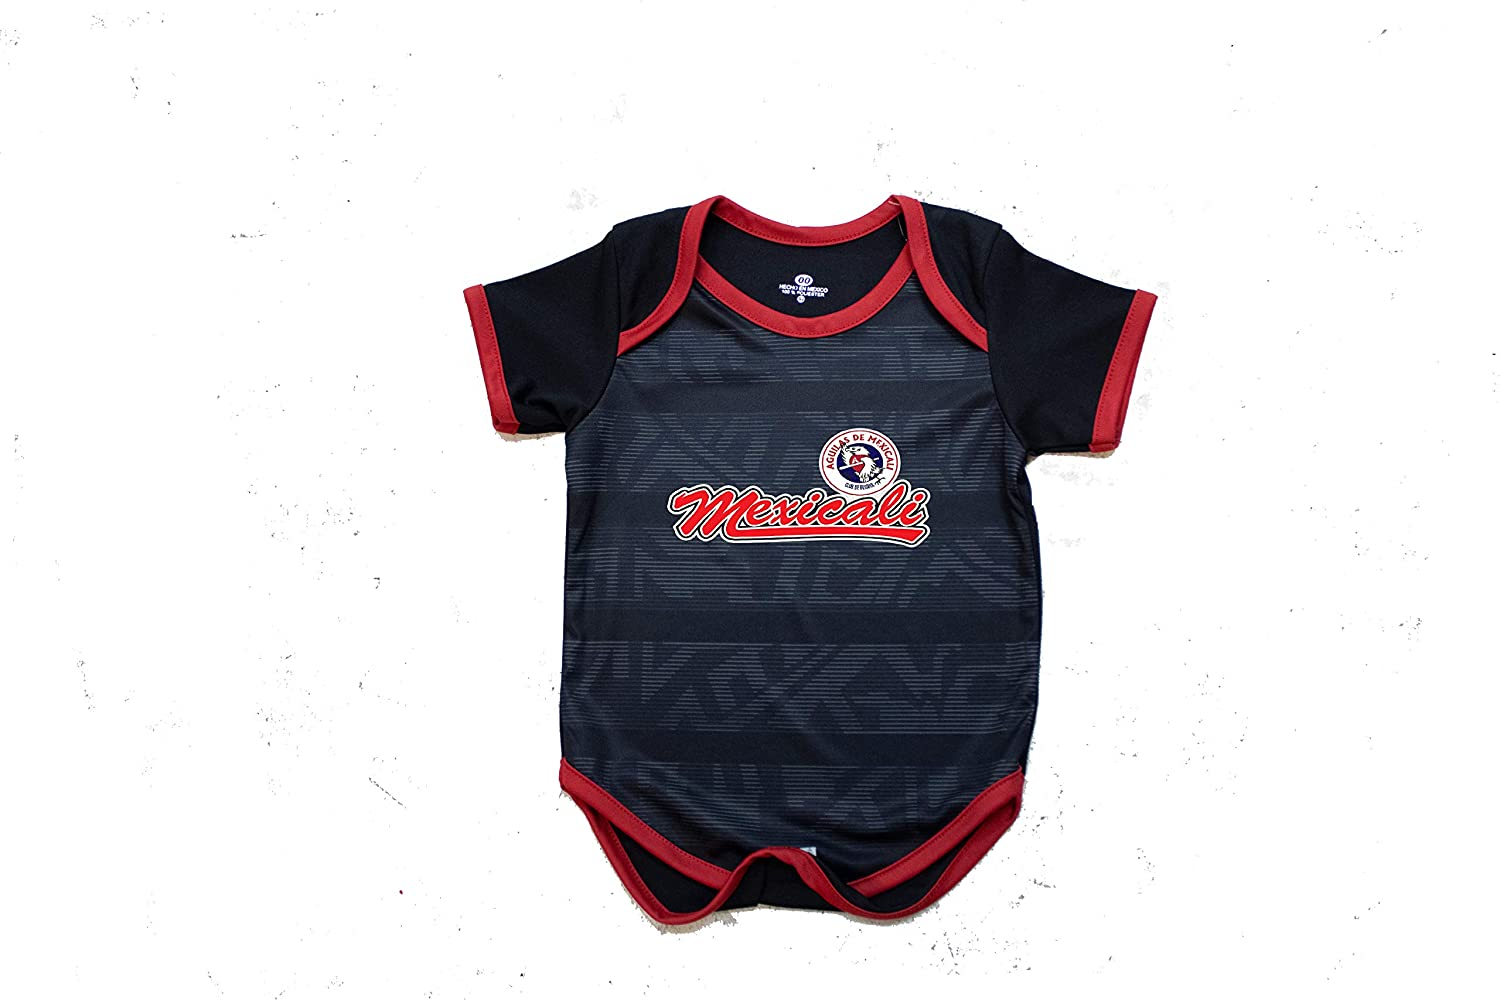 Aguilas de Mexicali Baby Outfit Mameluco New W//O Tag Sizes 3 to 12 Months